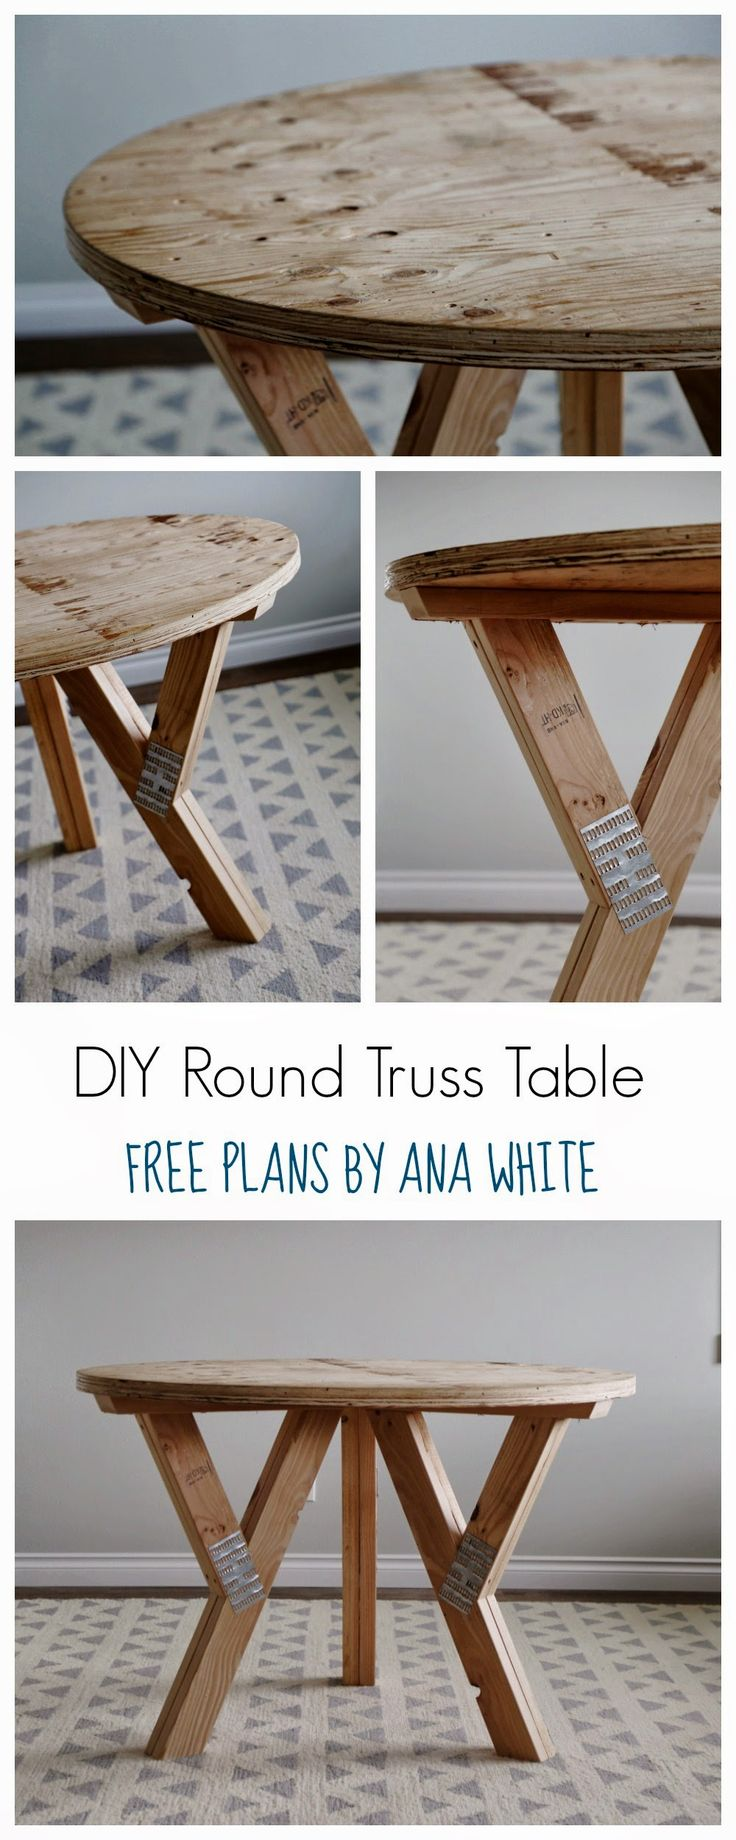 Table success do it yourself home projects from ana white diy 85 - Table Success Do It Yourself Home Projects From Ana White Diy 85 Table Success Do